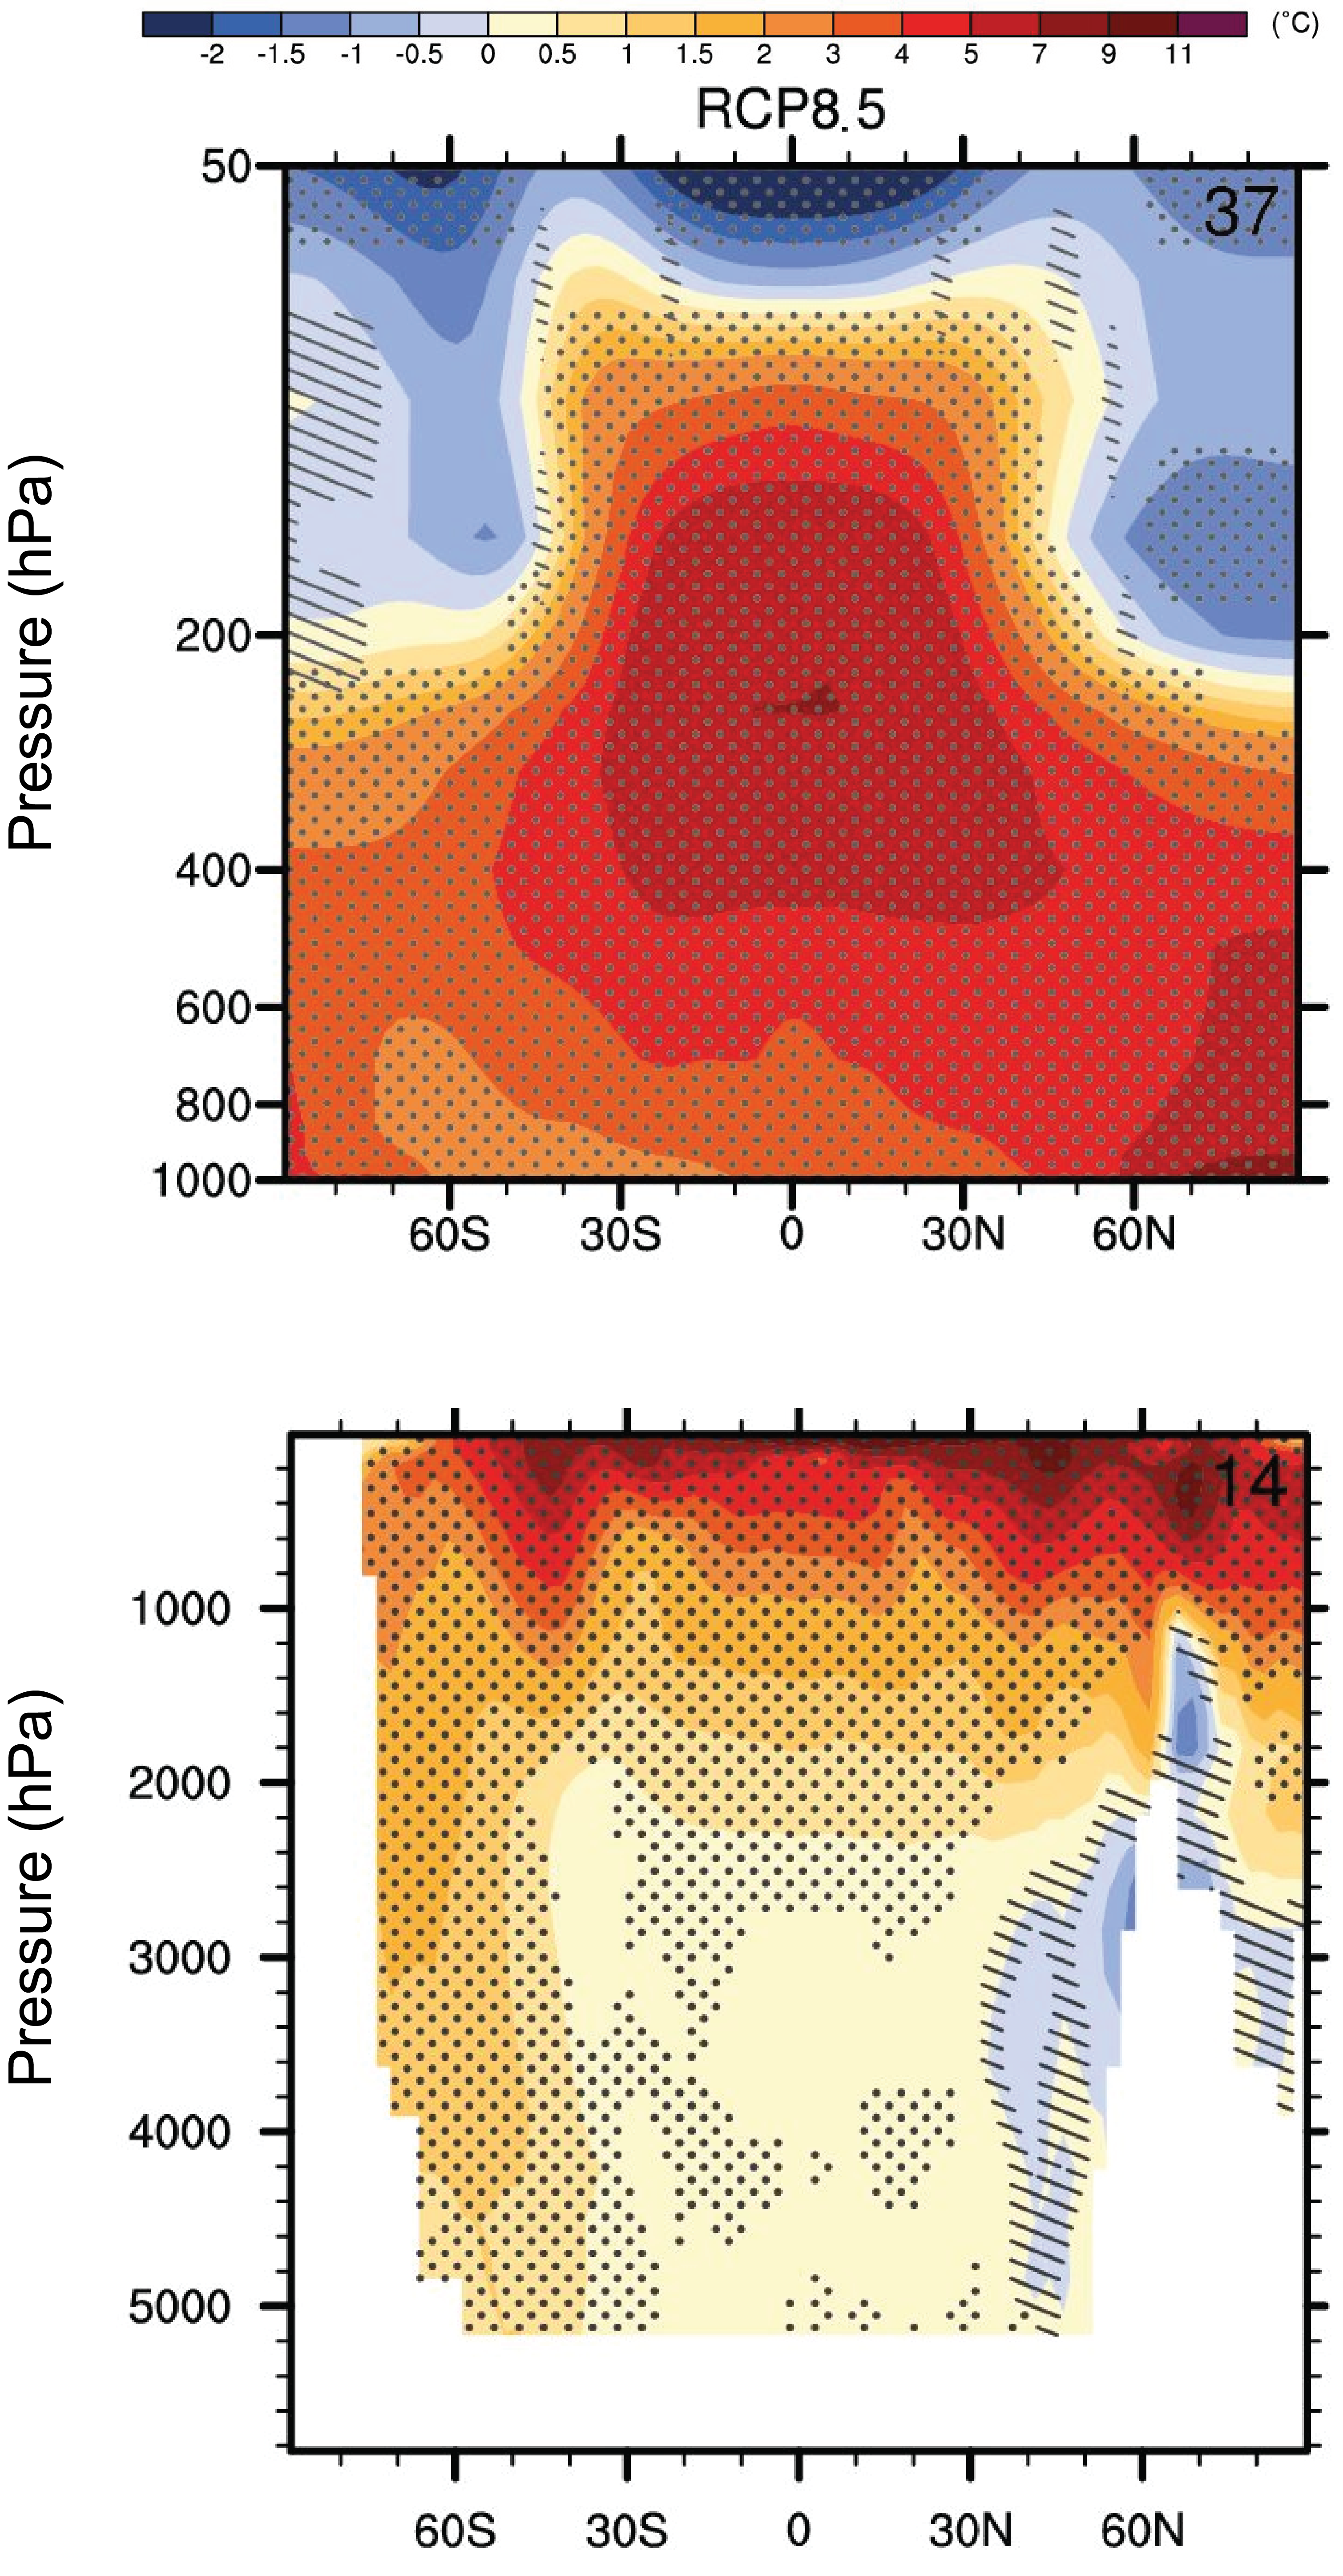 Zonally averaged temperature changes projected for the end of the 21st century in the atmosphere (top) and ocean (bottom) as a function of latitude and pressure (height, top) and depth (bottom) for scenario RCP8.5. Stippling indicates significance as in Fig. 4. Hatching indicates where changes are not significant with respect to 2 sigma variations of internal variability. Click on the ocean panel to see results for other scenarios. From ipcc.ch.